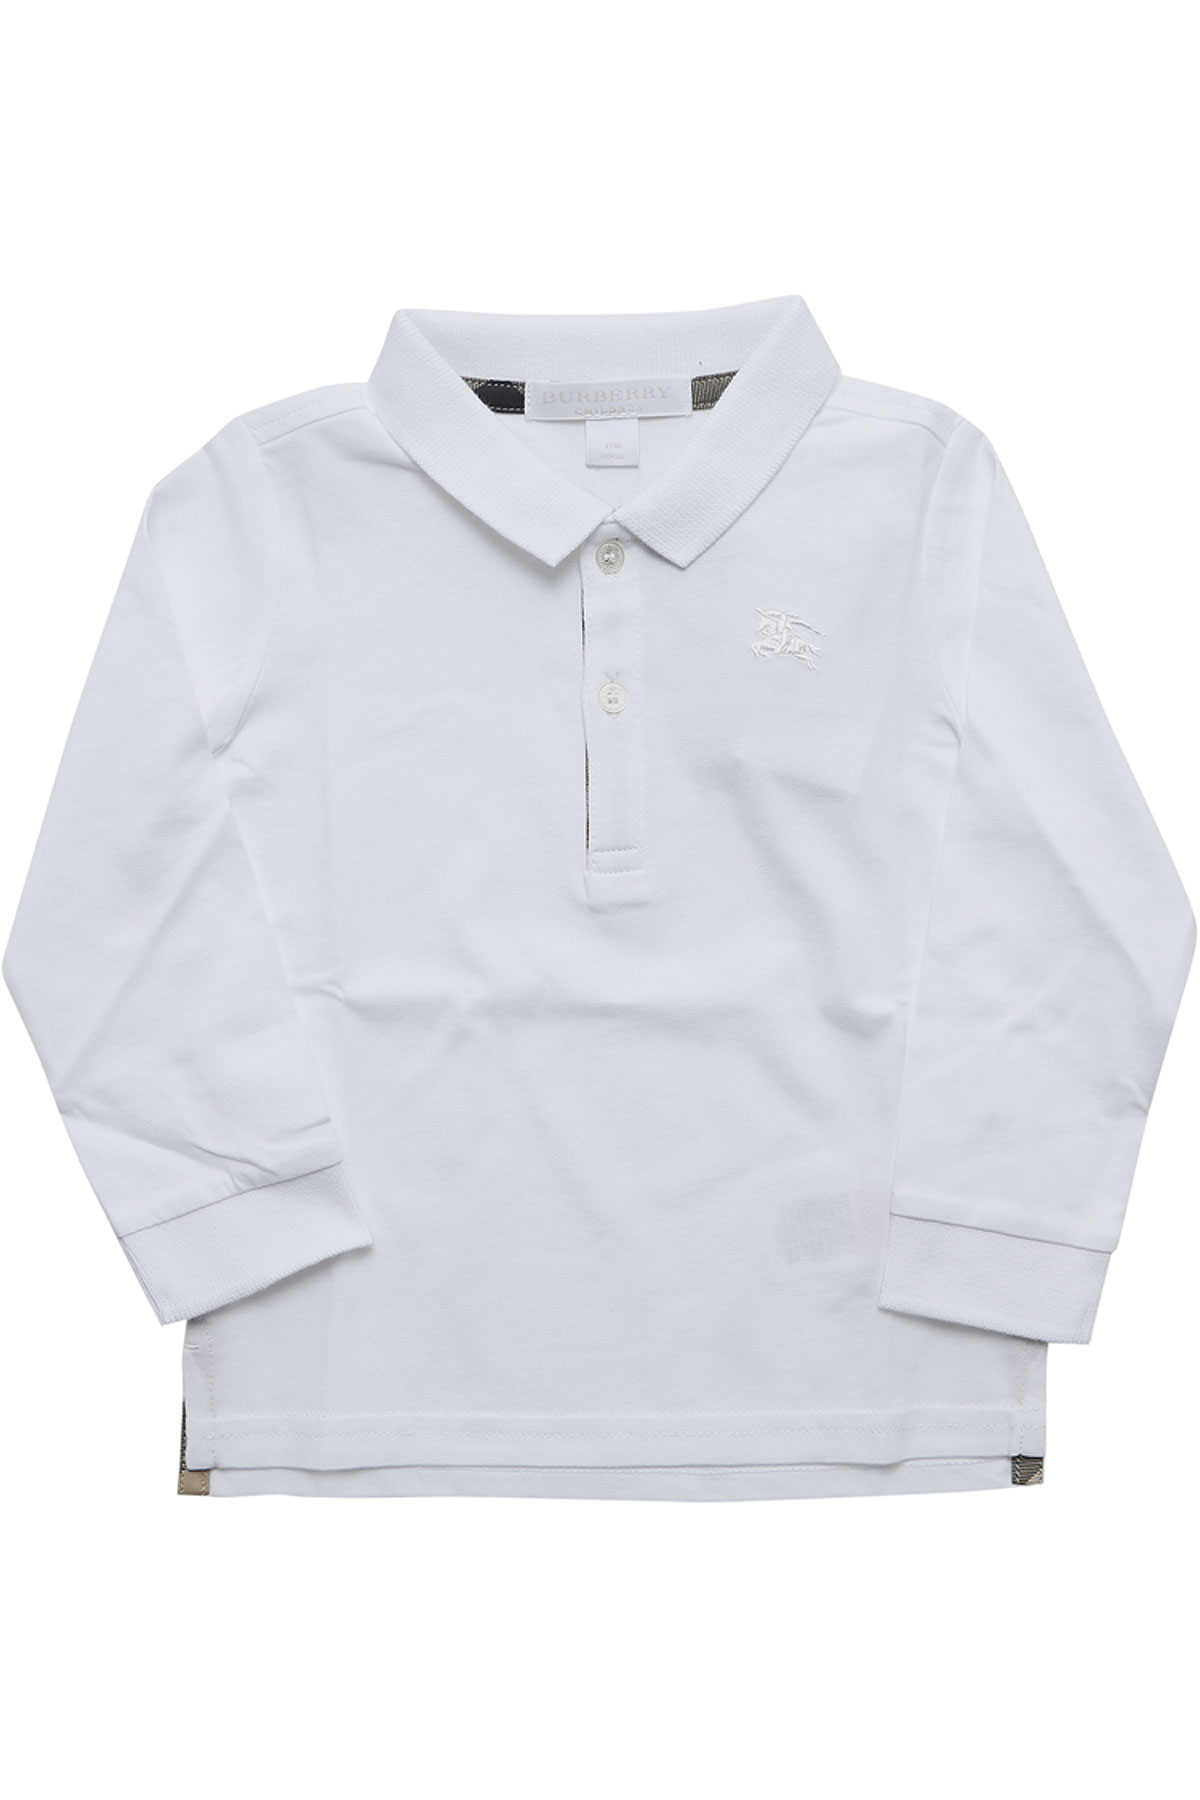 Image of Burberry Baby Polo Shirt for Boys, White, Cotton, 2017, 2Y 3Y